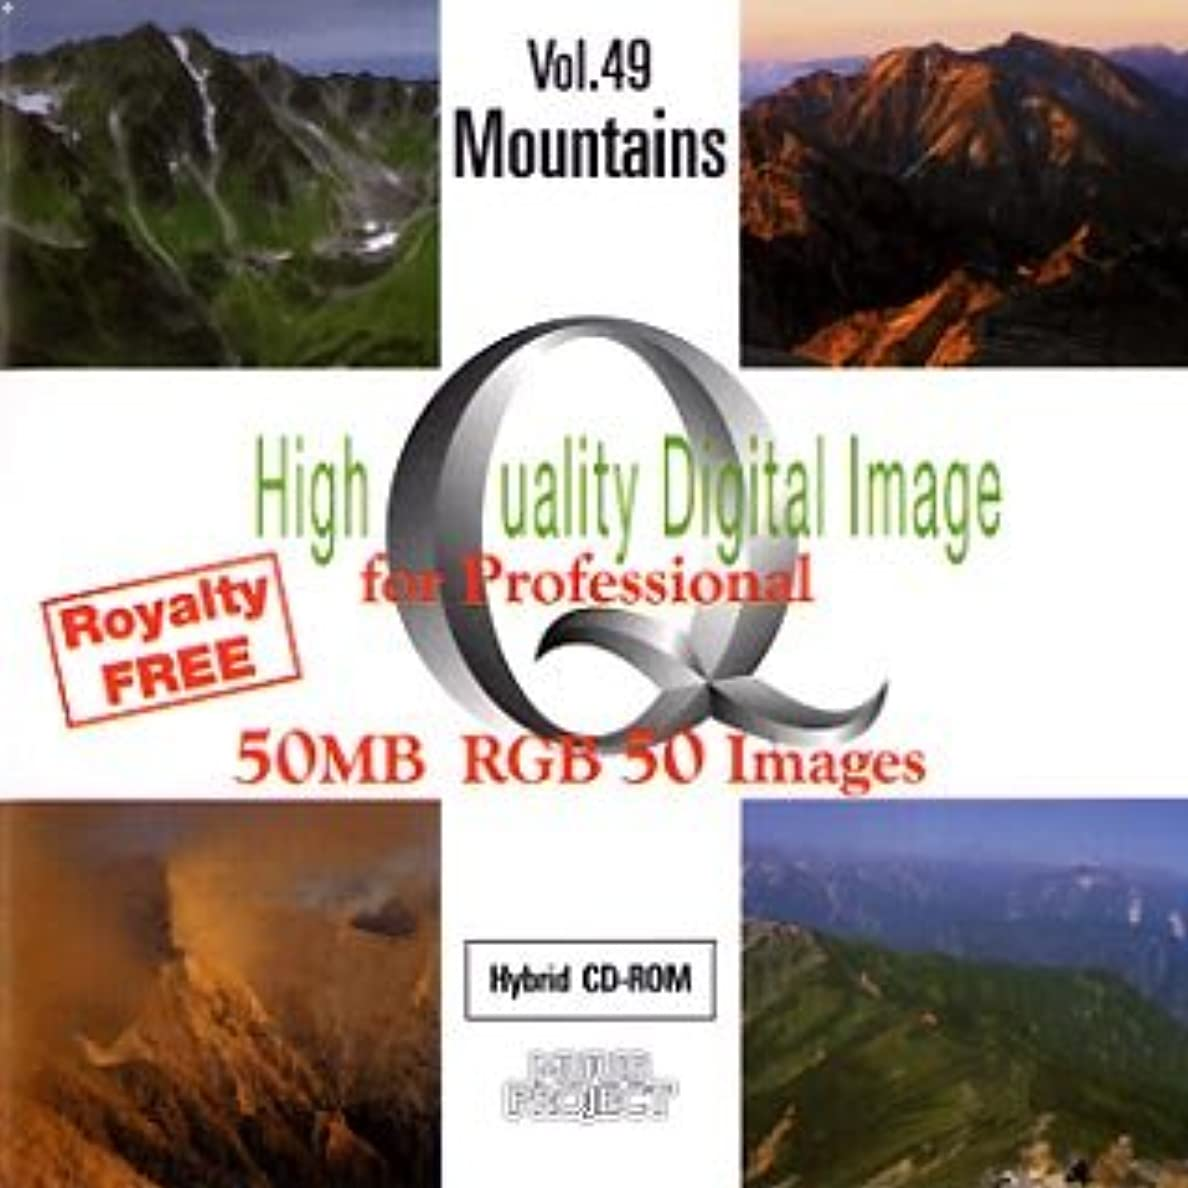 あいまいさ男らしさうめきHigh Quality Digital Image for Professional Vol.49 Mountains